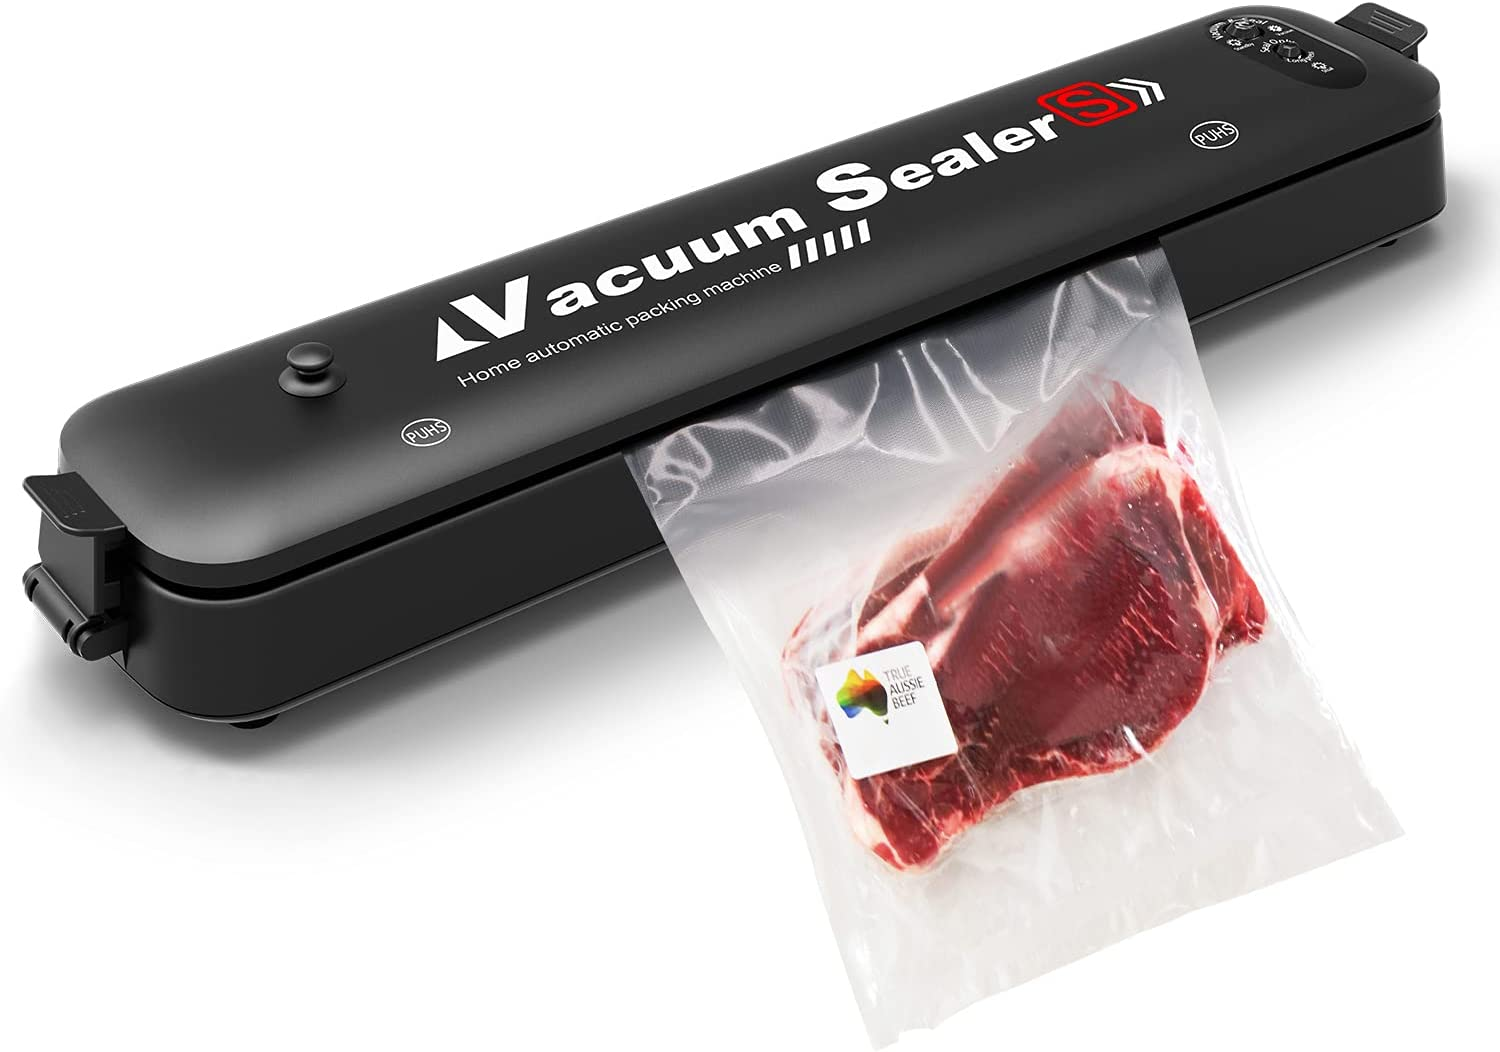 Vacuum Sealer Machine,Kuled Professional Automatic Vacuum Sealing System for Food Preservation Dry & Moist Food Modes Vacuum Packaging Machine Black With 15 PCS Sealer Bags